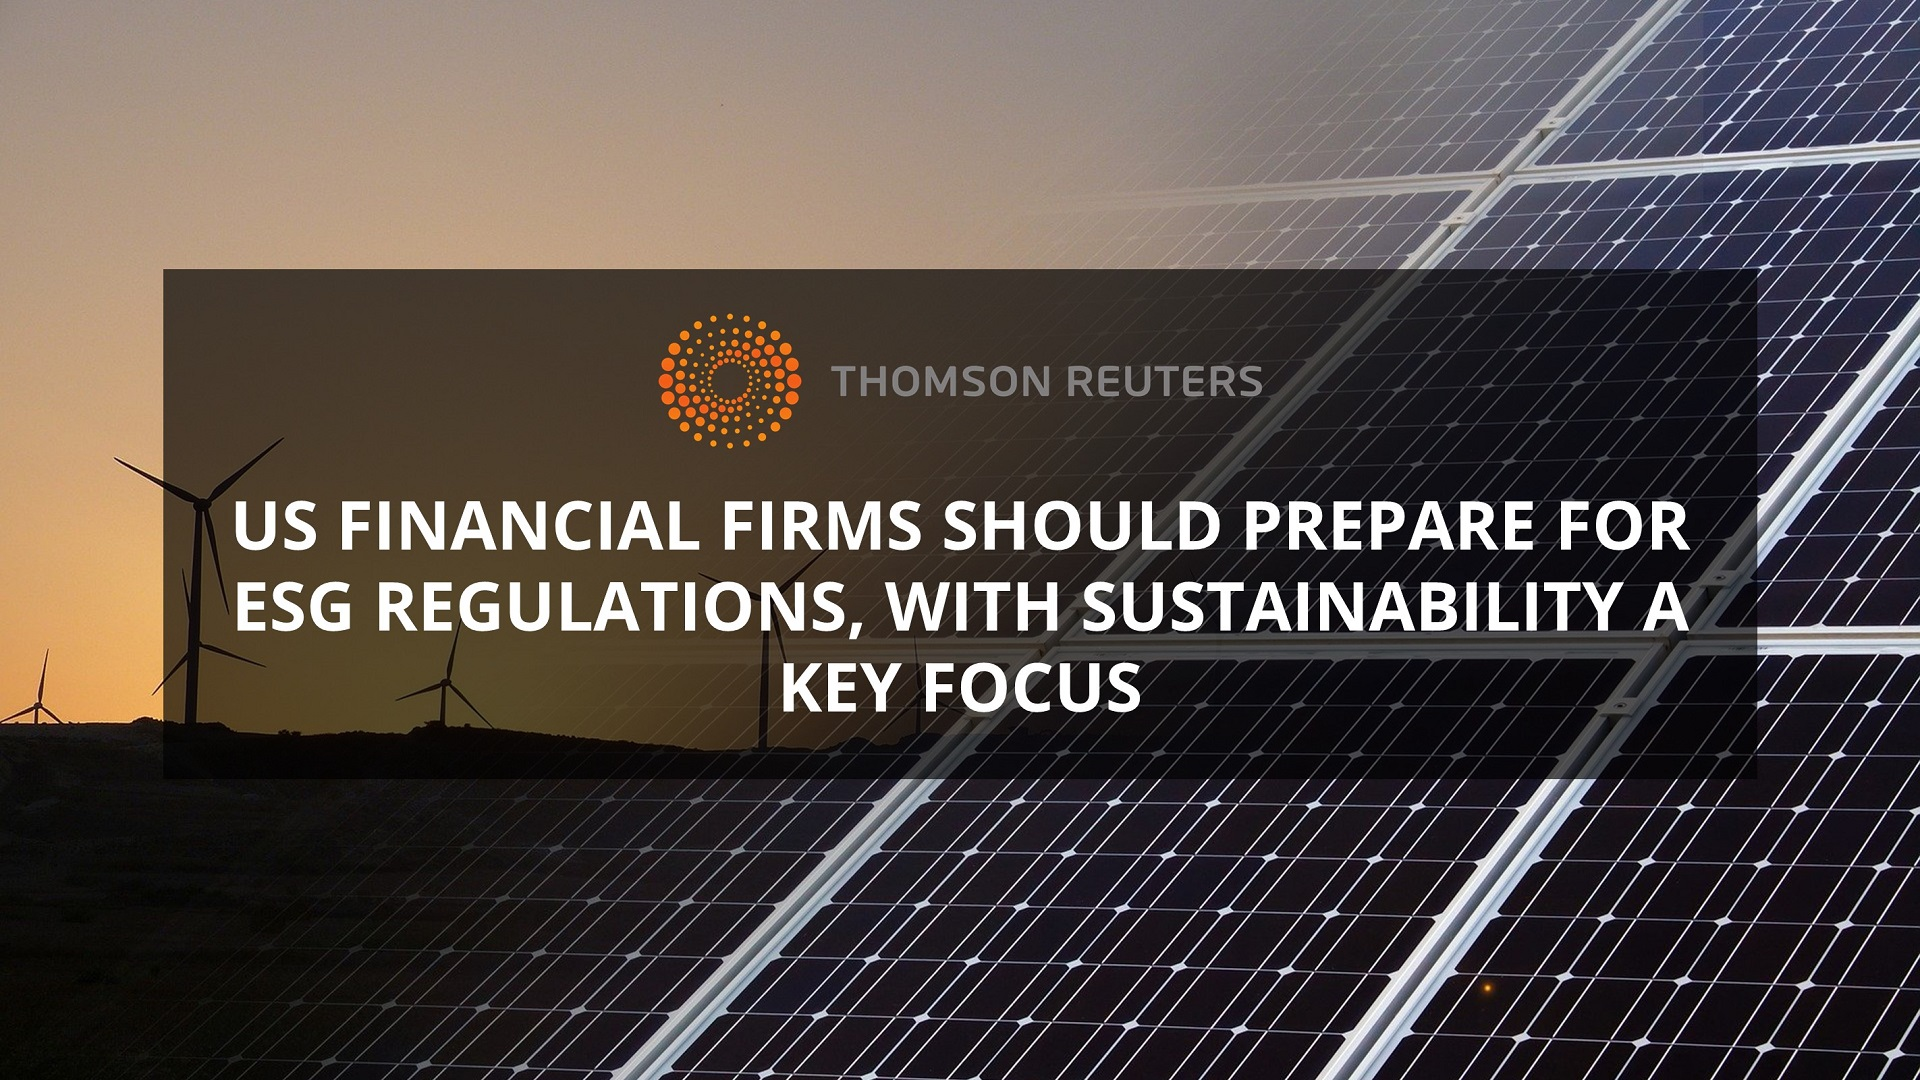 ESG Regulations in Focus for US Financial Firms